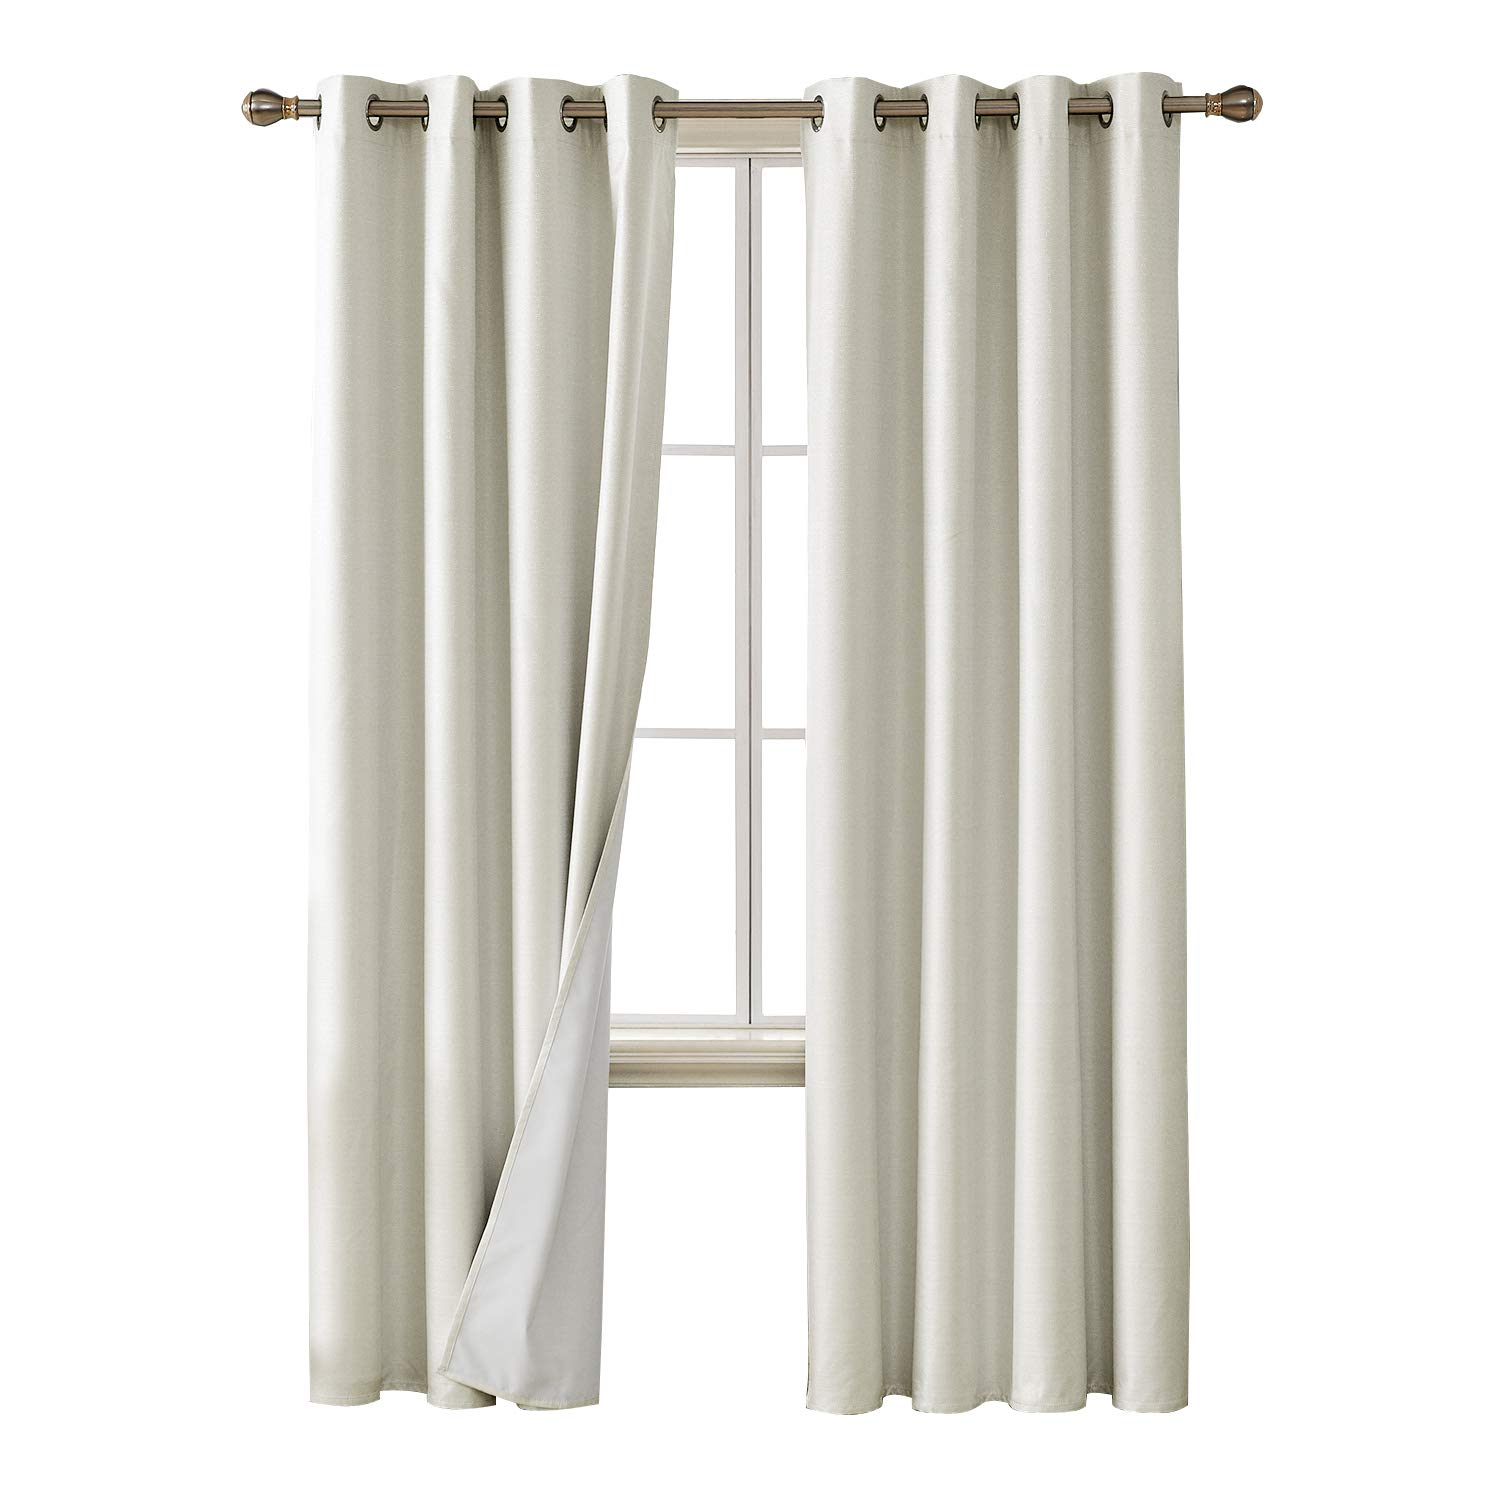 Deconovo Faux Linen Blackout Curtains With 3 Pass Coating Sun Blocking Thermal Insulated Room Darkening Grommet Curtains Panels For Bedroom 52 X 84 Inch 2 Panels Cream White Buy Online In